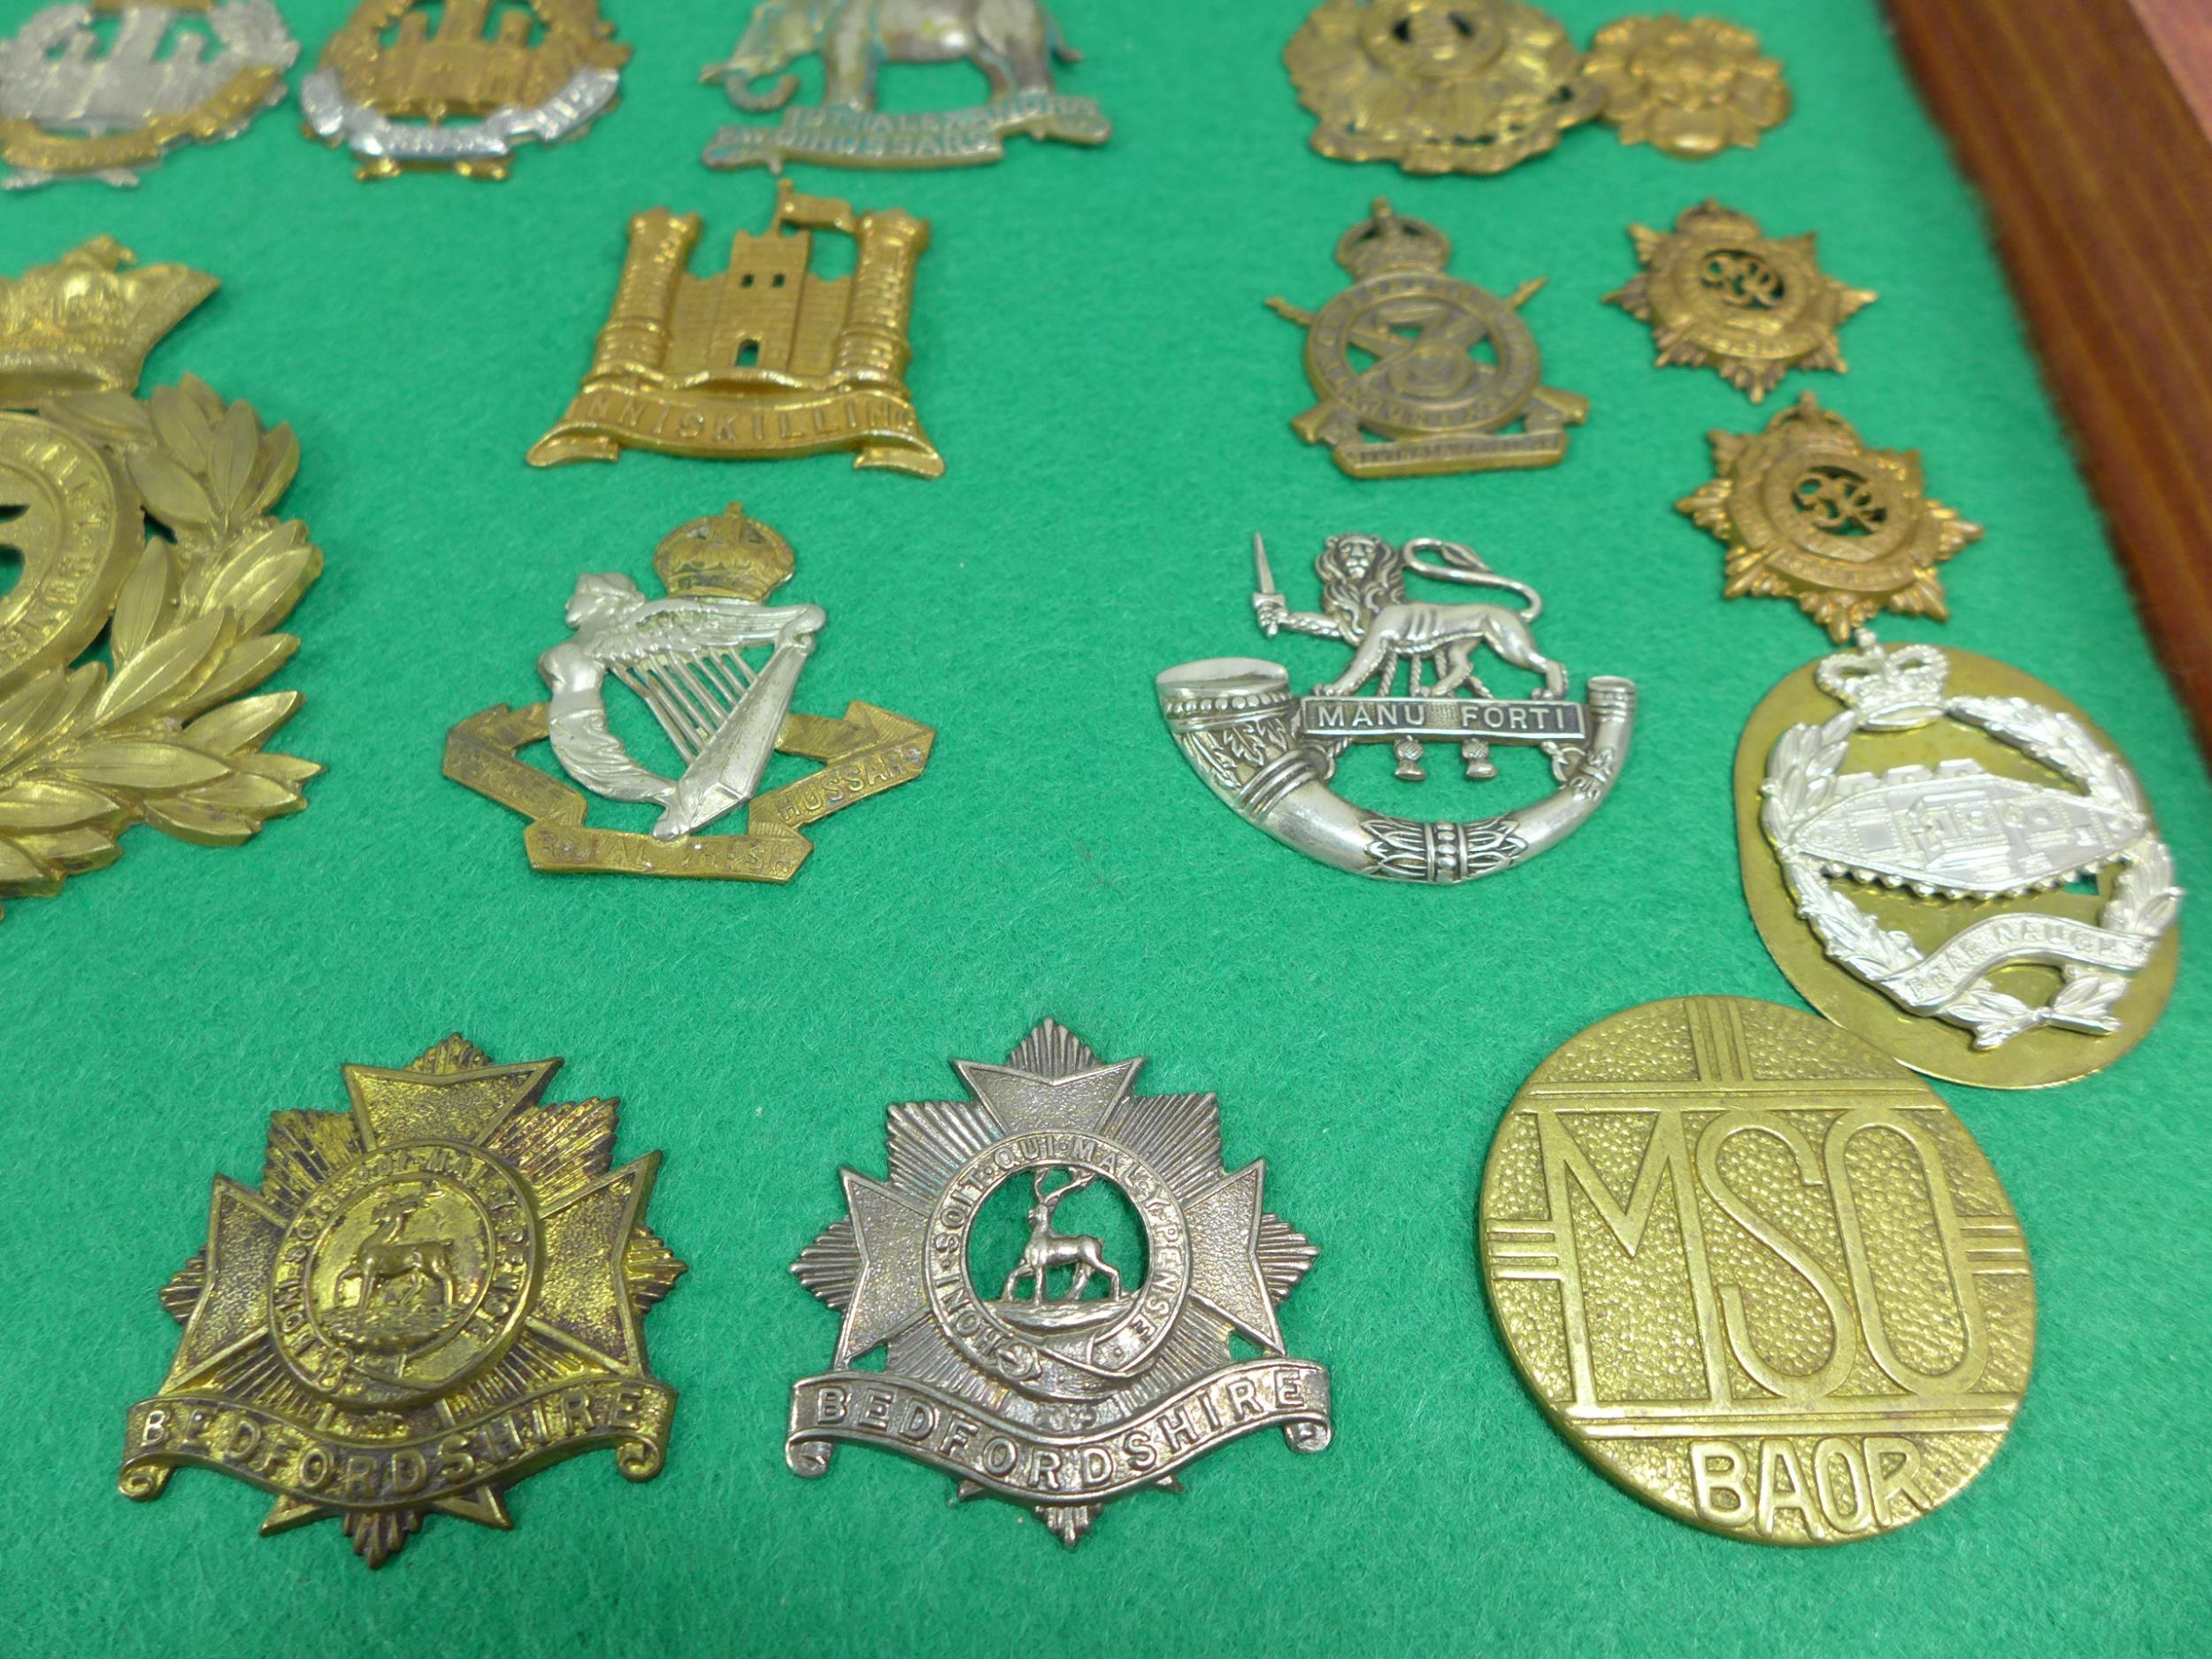 A GLAZED DISPLAY CASE CONTAINING THIRTY FIVE BRITISH MILITARY BADGES, 33CM X 49CM - Image 4 of 6